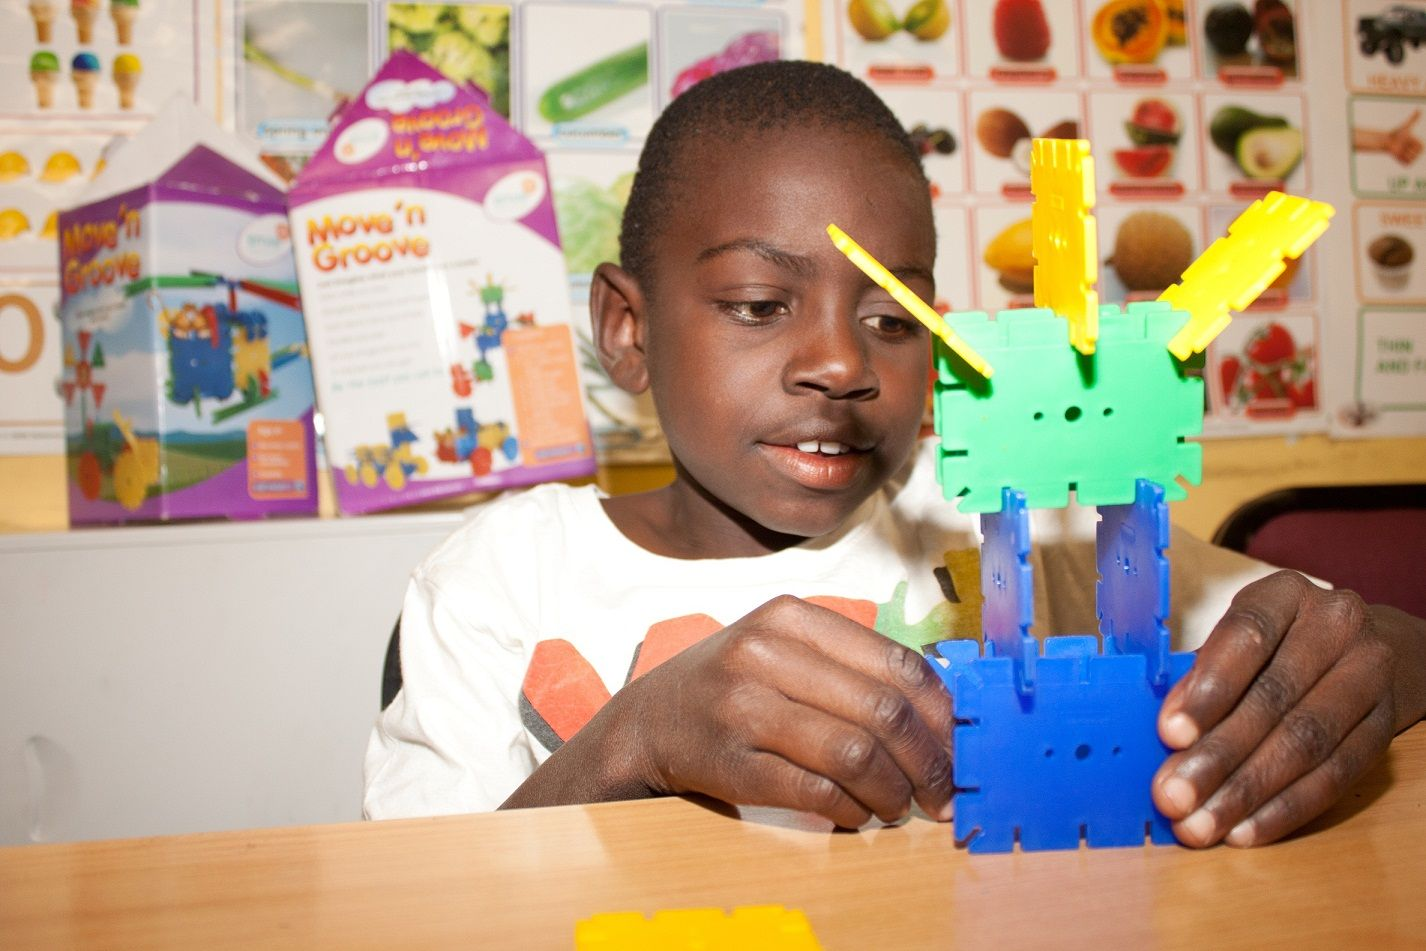 Pre-schools: Our pre-schools are well equipped with educational toys.  Over 1,000 children attend our pre-schools daily.